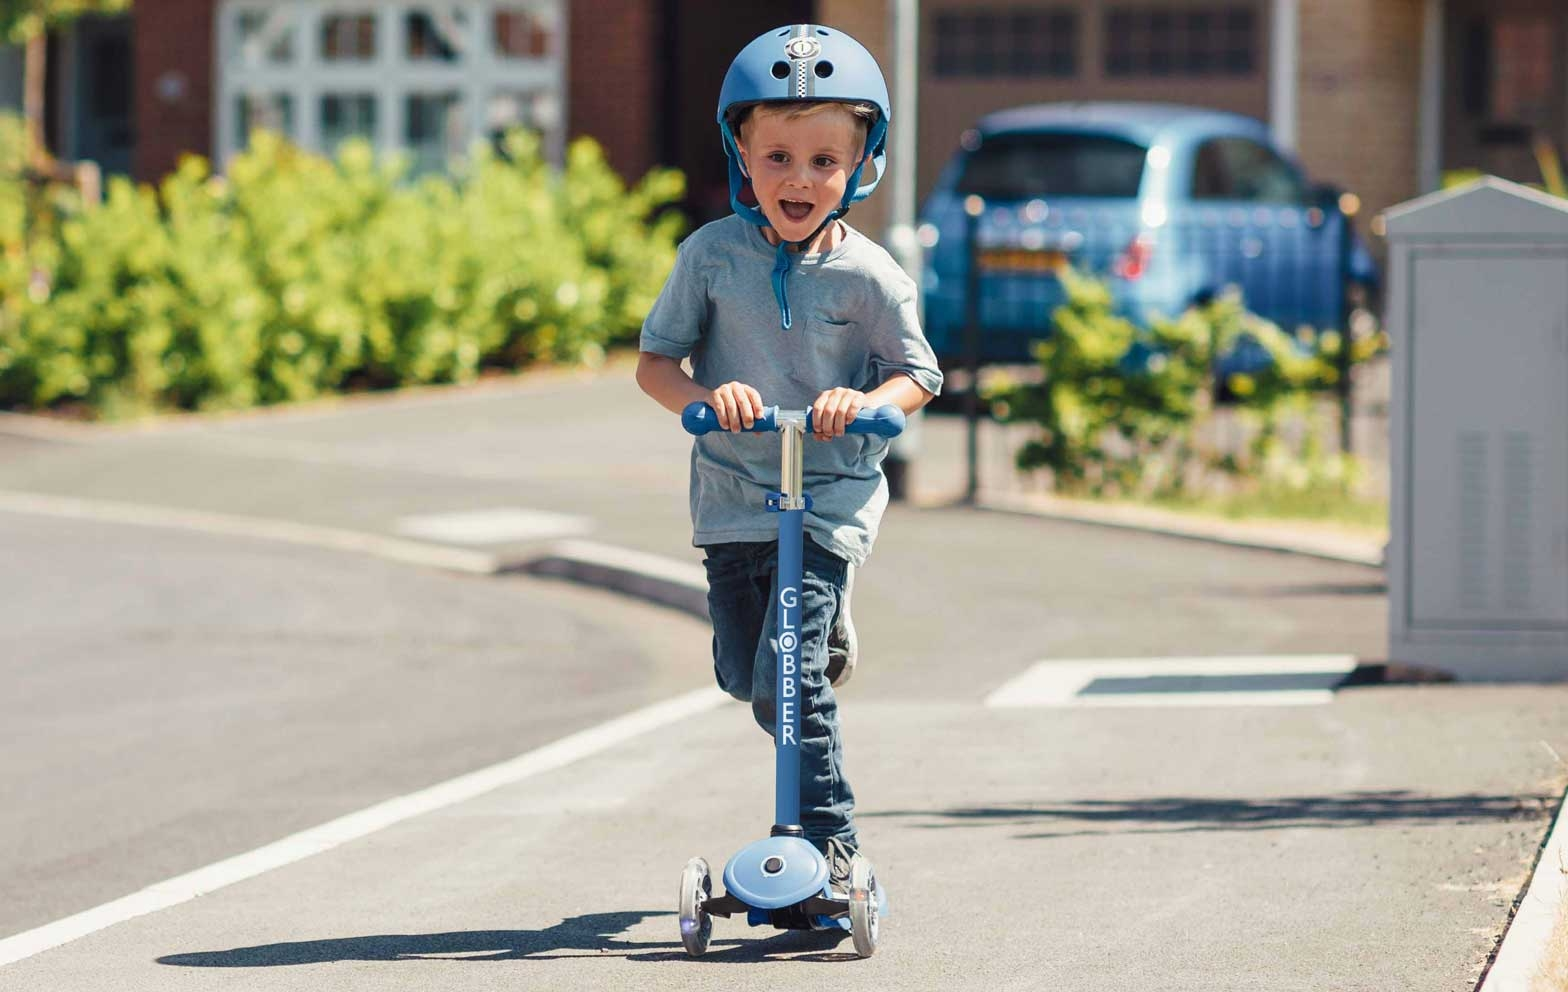 3 wheel scooters for kids aged 3+